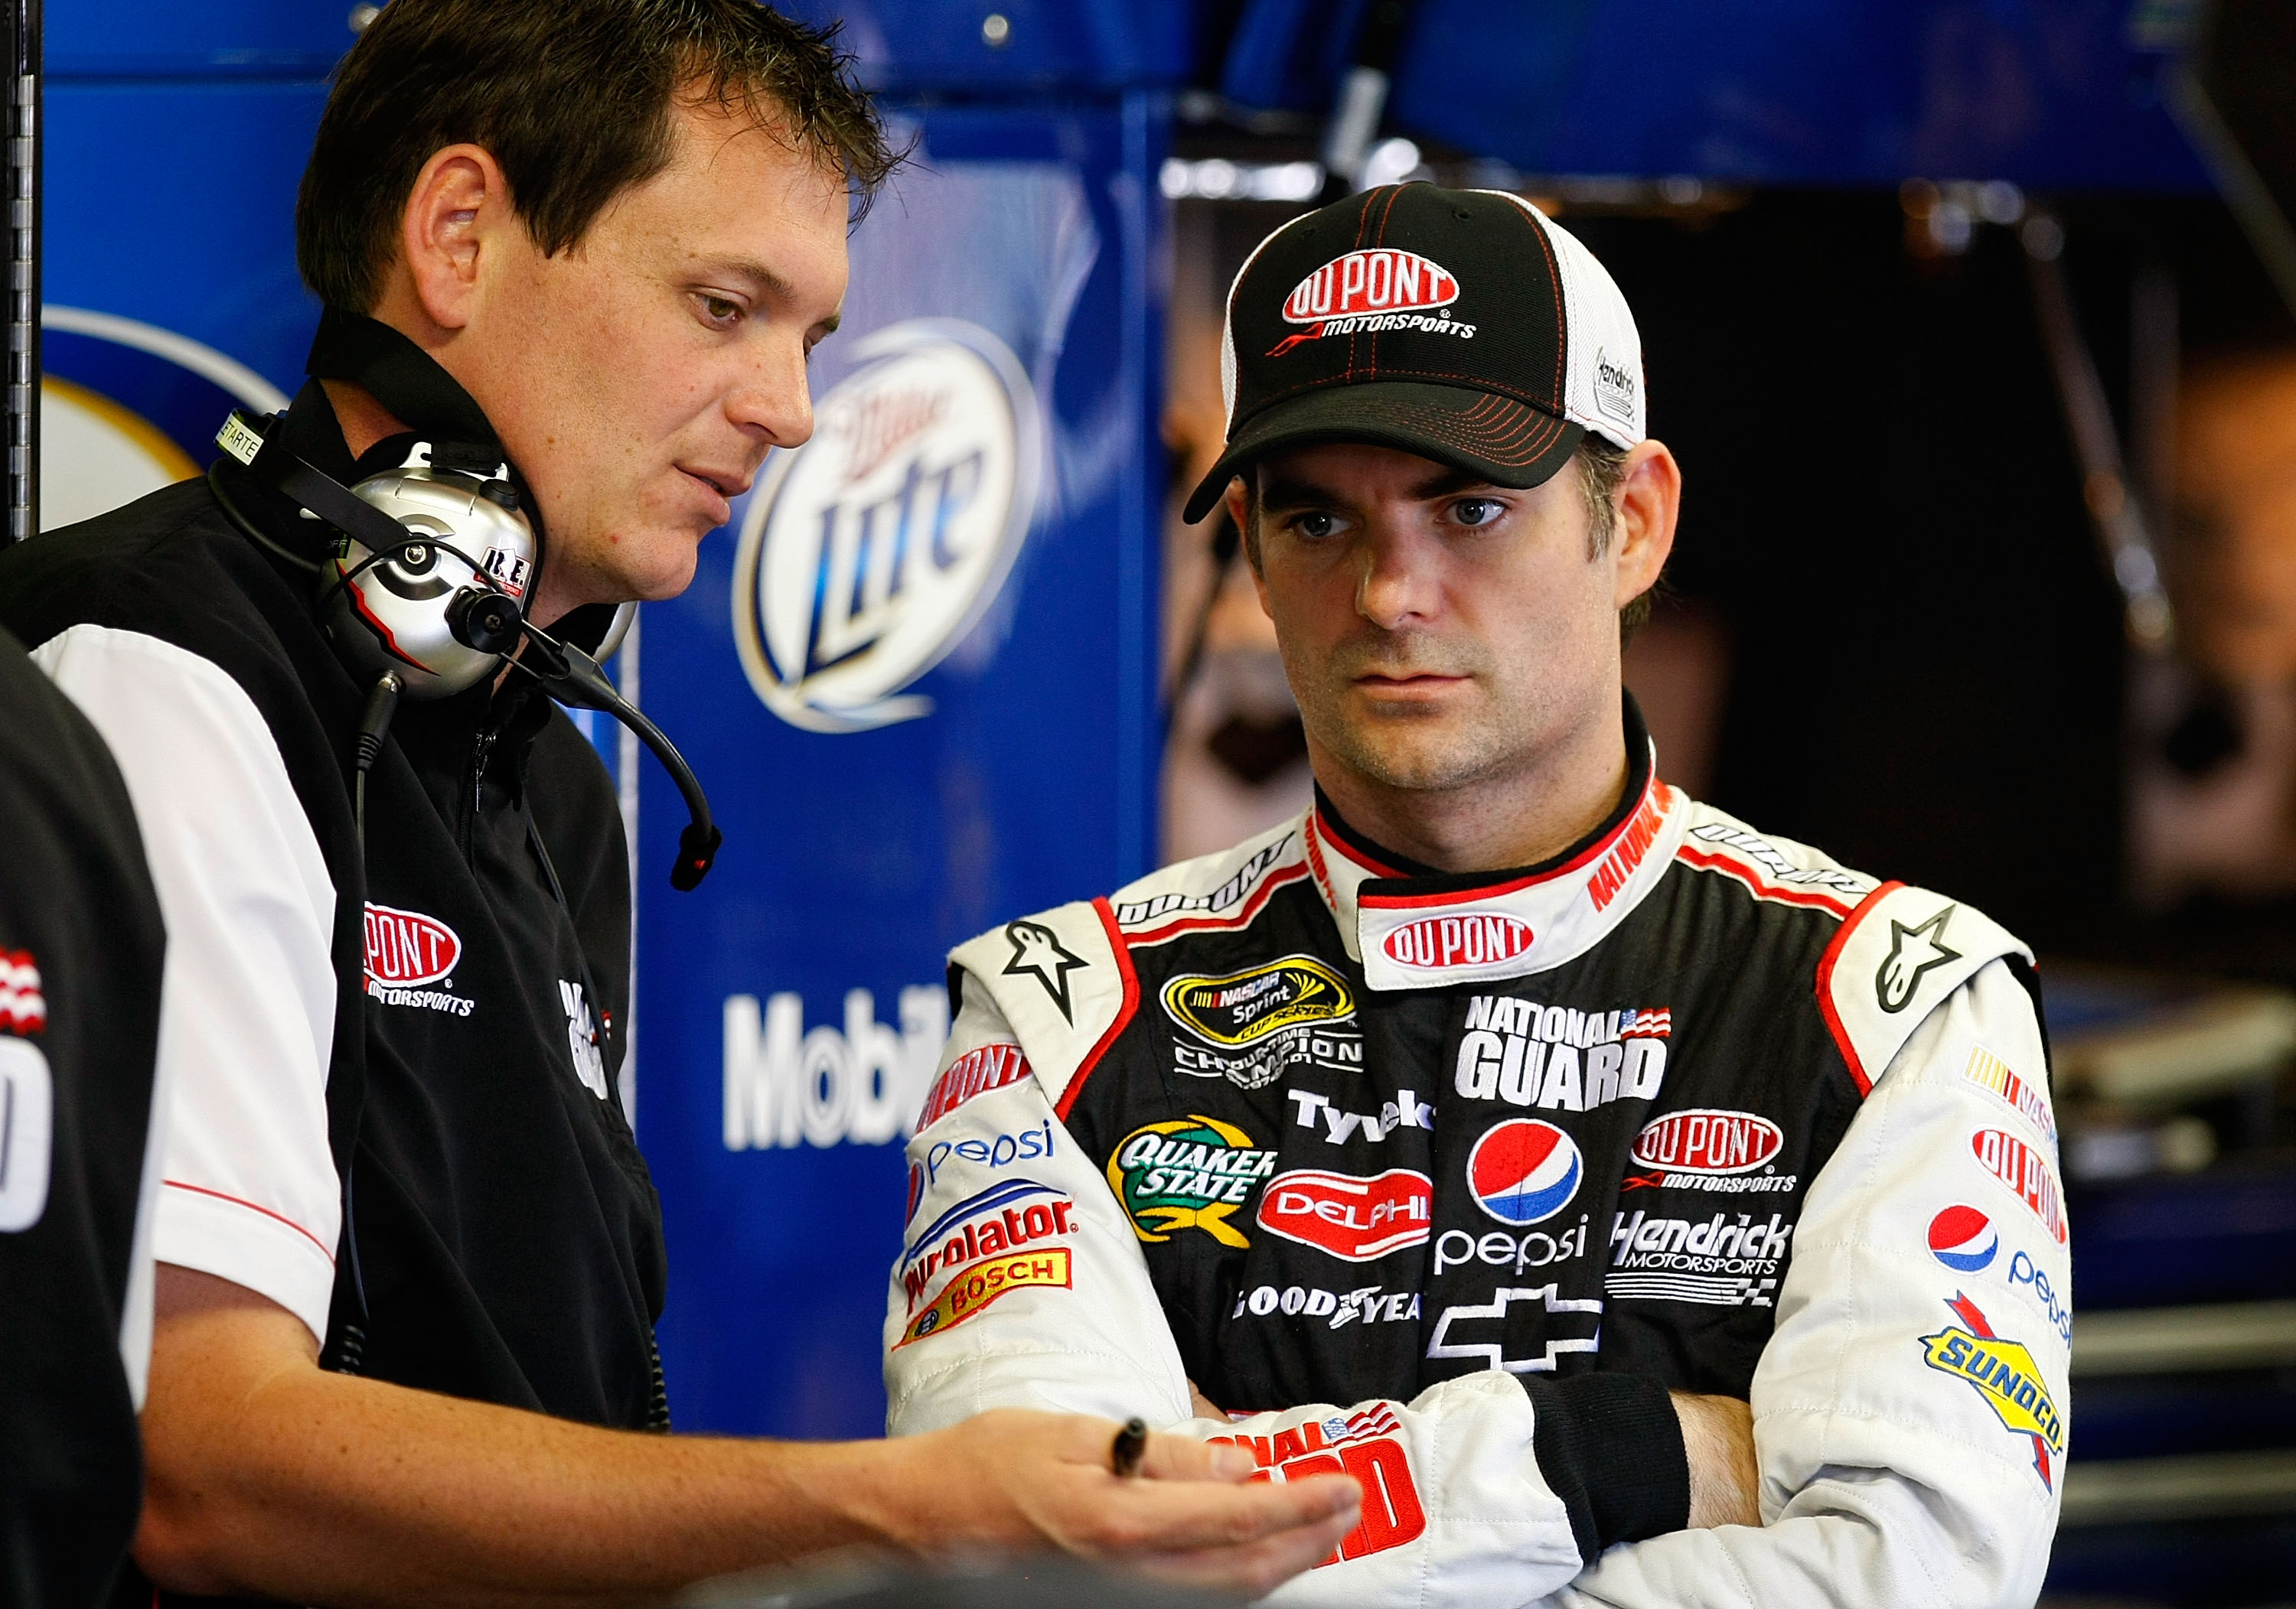 BROOKLYN, MI - JUNE 12: Jeff Gordon (R), driver of the #24 DuPont/National Guard Job Skills Chevrolet, talks with crew chief Steve Letarte (L) in the garage during practice for the NASCAR Sprint Cup Series Heluva Good! Sour Cream Dips 400 at Michigan Inte